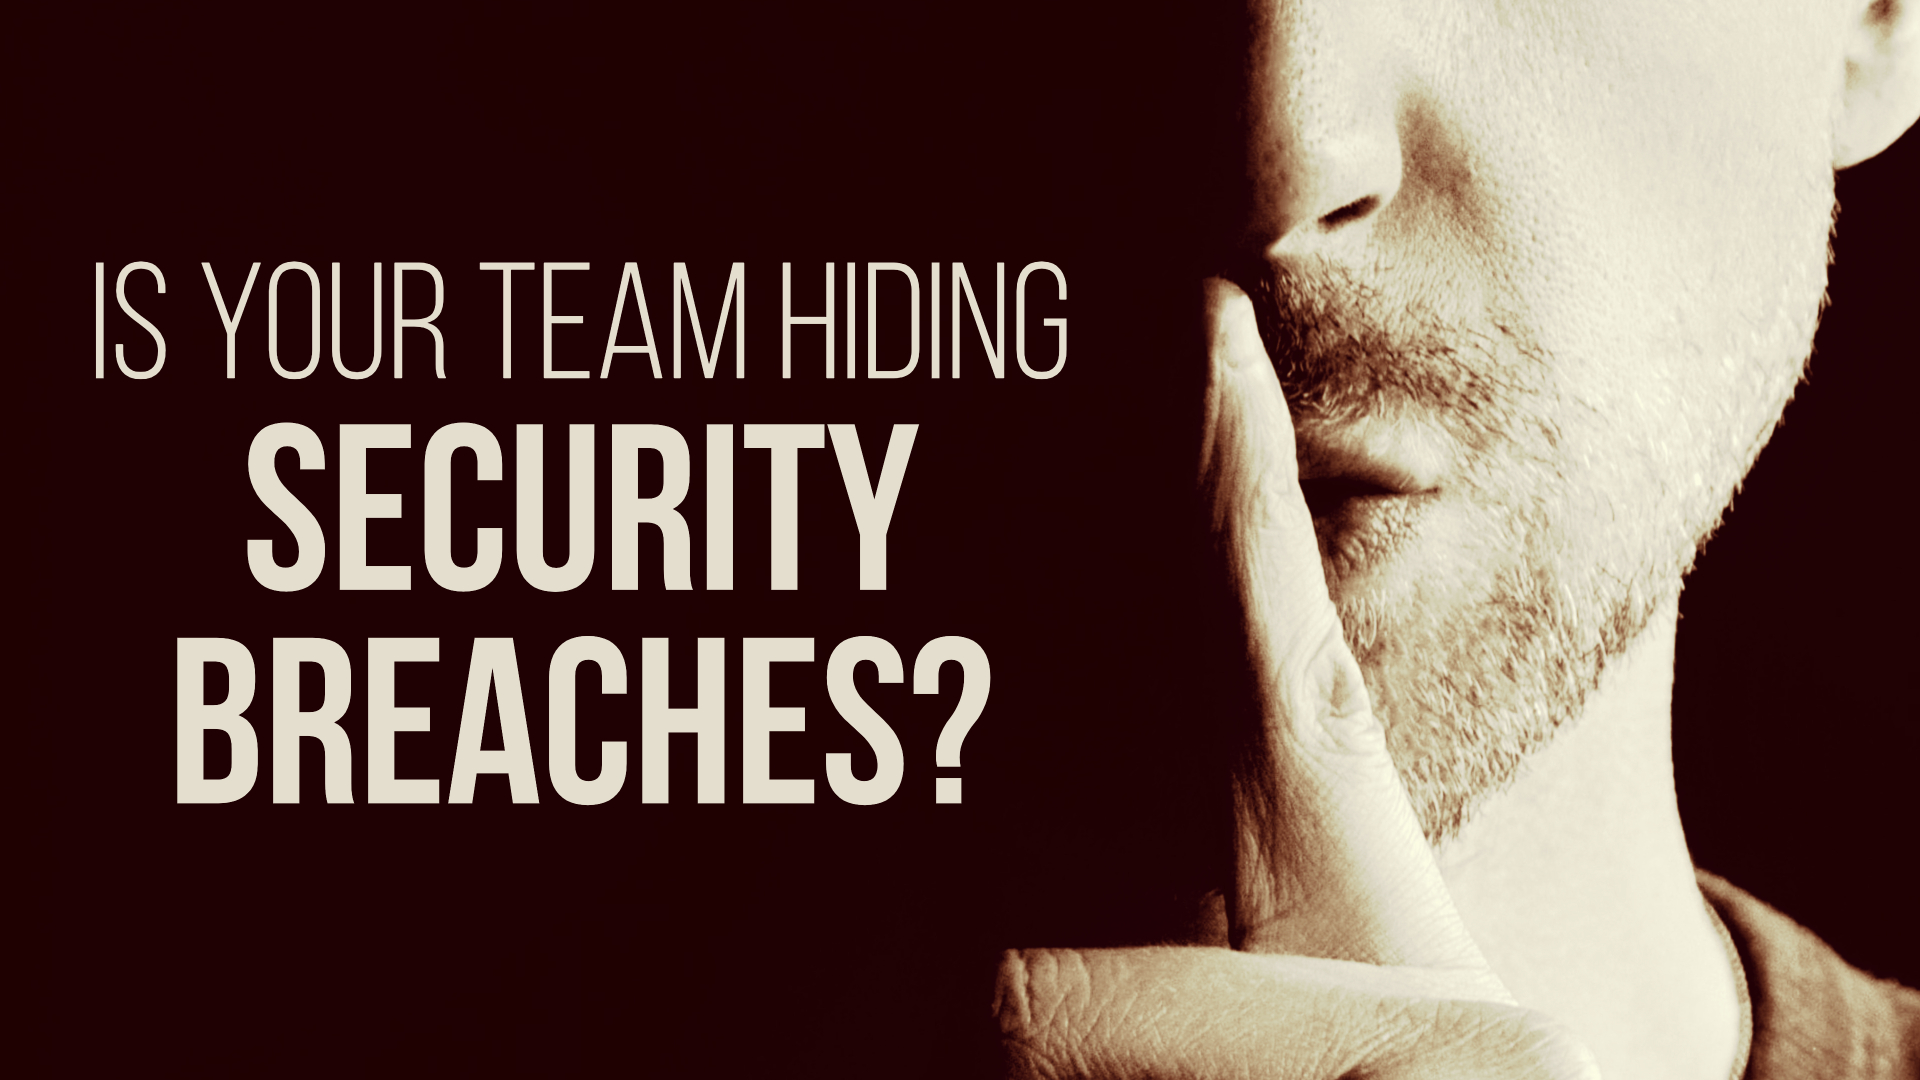 Is your team hiding security breaches?